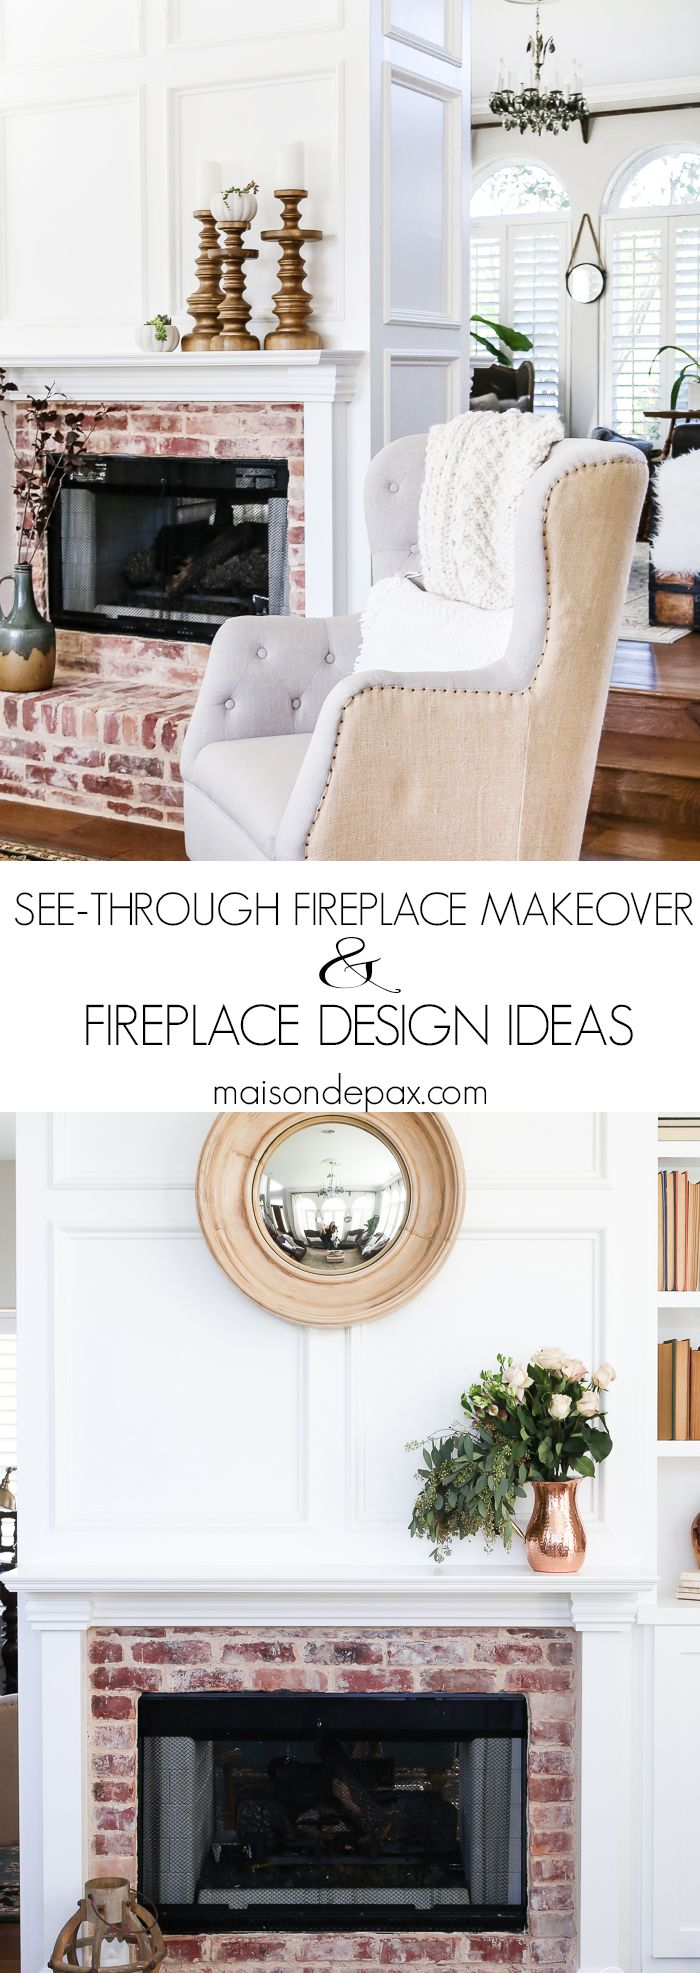 Looking for fireplace makeover ideas? See how this awkward glass fireplace was transformed into an elegant classic with antique brick, white molding, and a gas insert. #fireplacemakeover #fireplacedesign #seethroughfireplace #twosidedfireplace #manteldesign #whitemolding #blockpaneling #antiquebrick #brickfireplace